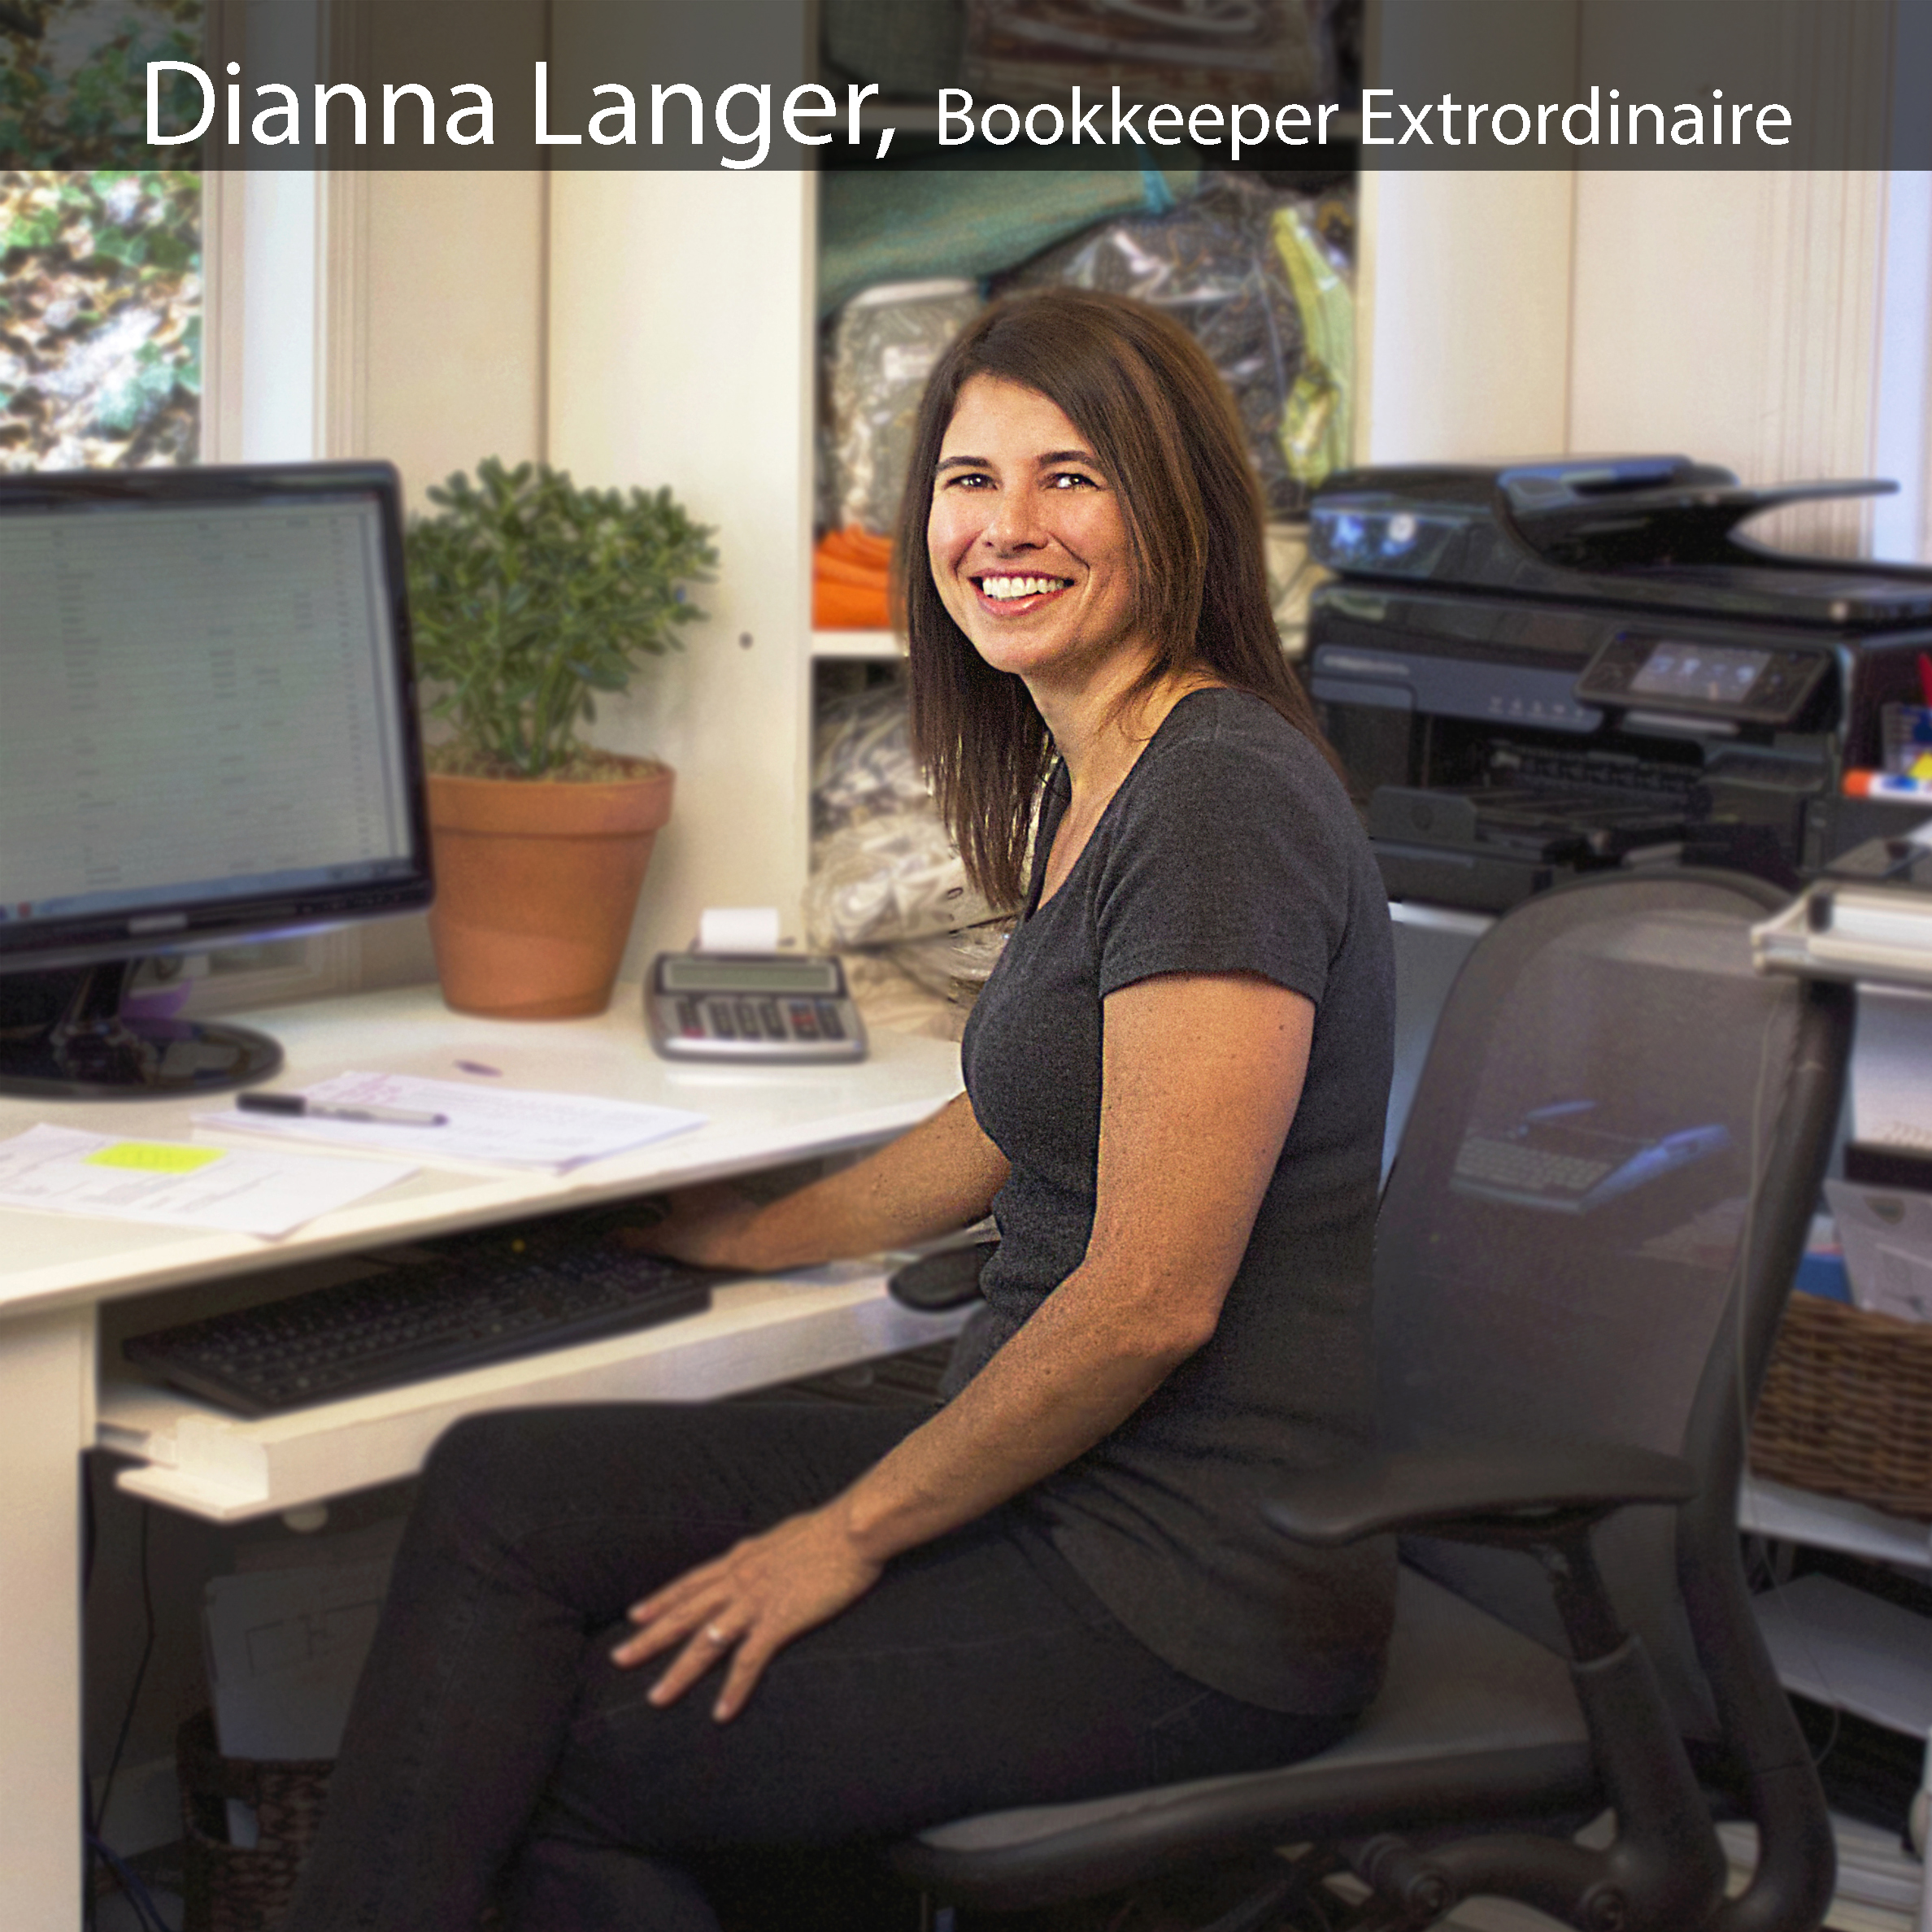 Dianna is our bookkeeper Extraordinaire. Any busy design team needs a talented back end assistant, and Dianna is precisely that for JBID. Hard working, focused, and on point.